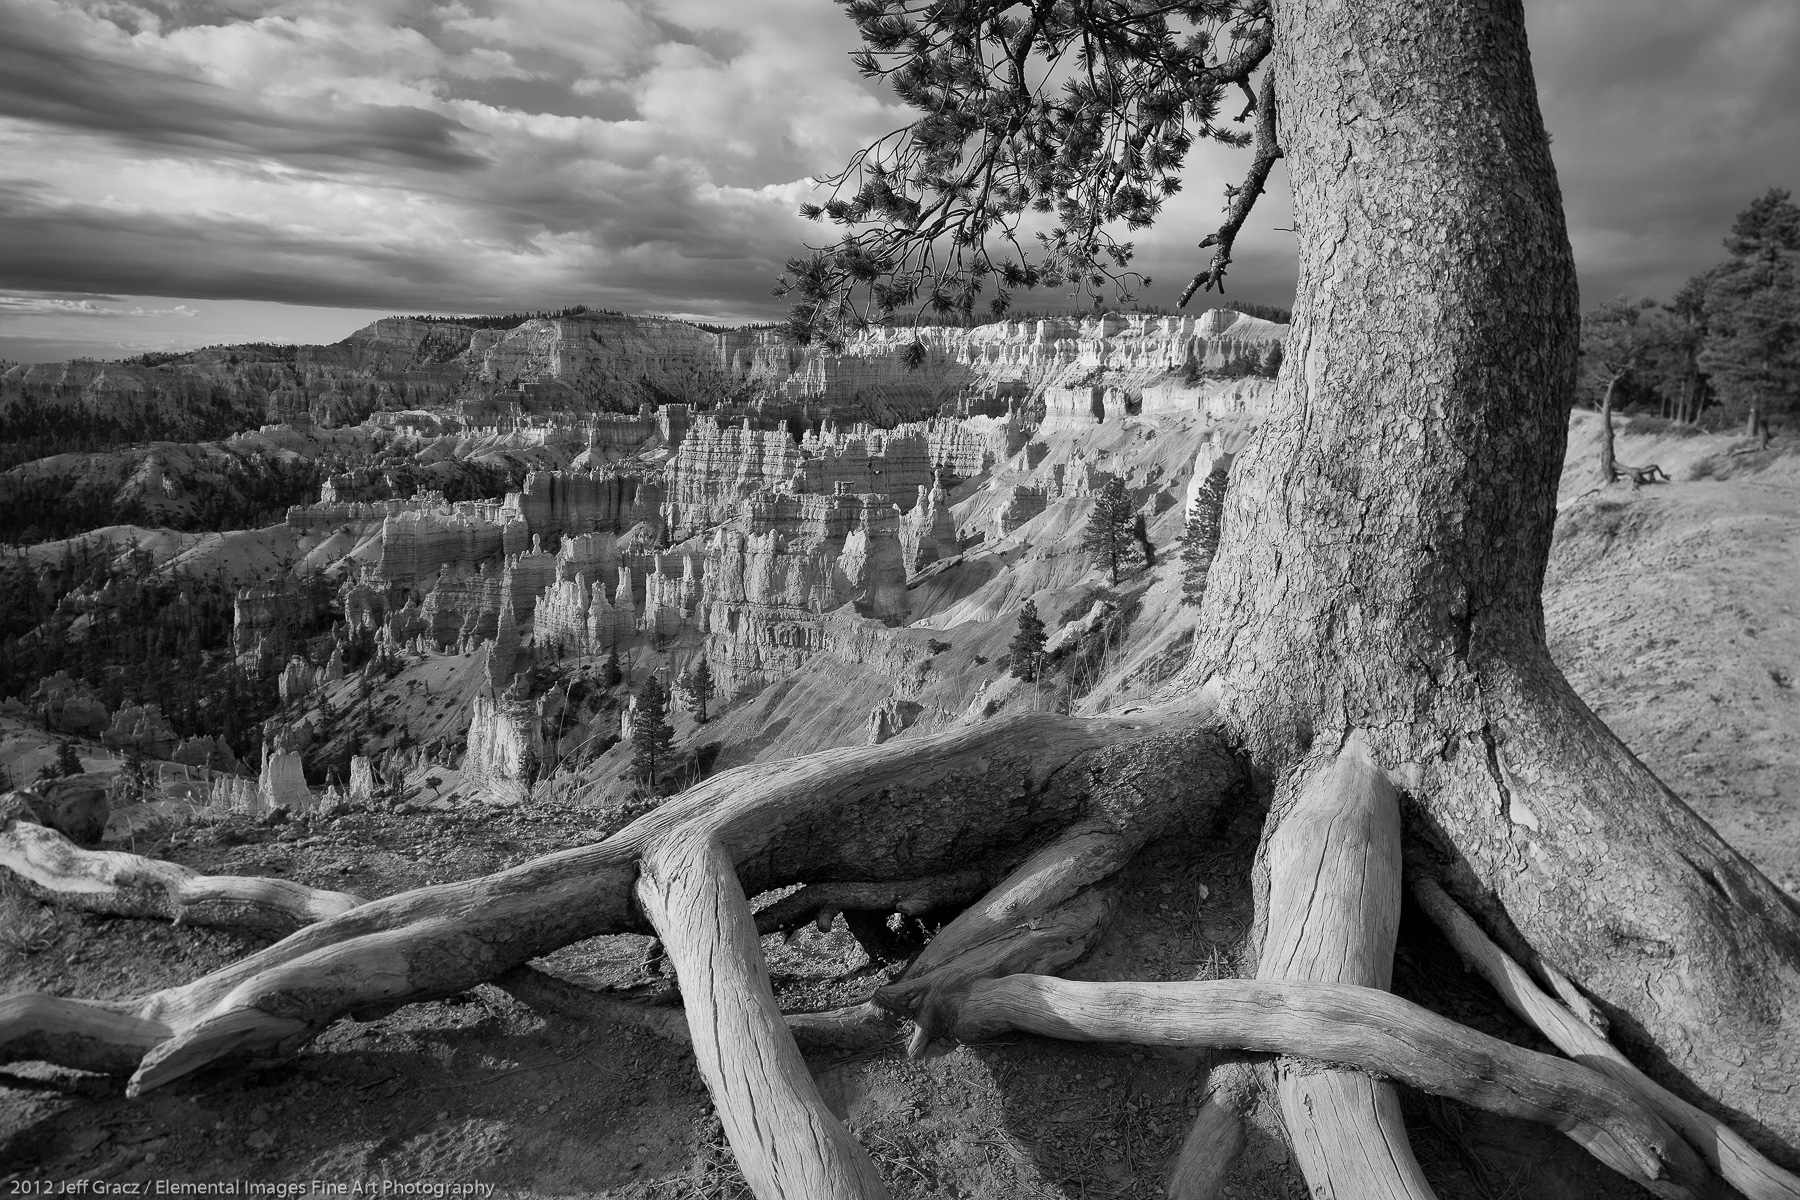 View from Bryce Canyon Rim III | Bryce Canyon National Park |  | USA - © 2012 Jeff Gracz / Elemental Images Fine Art Photography - All Rights Reserved Worldwide